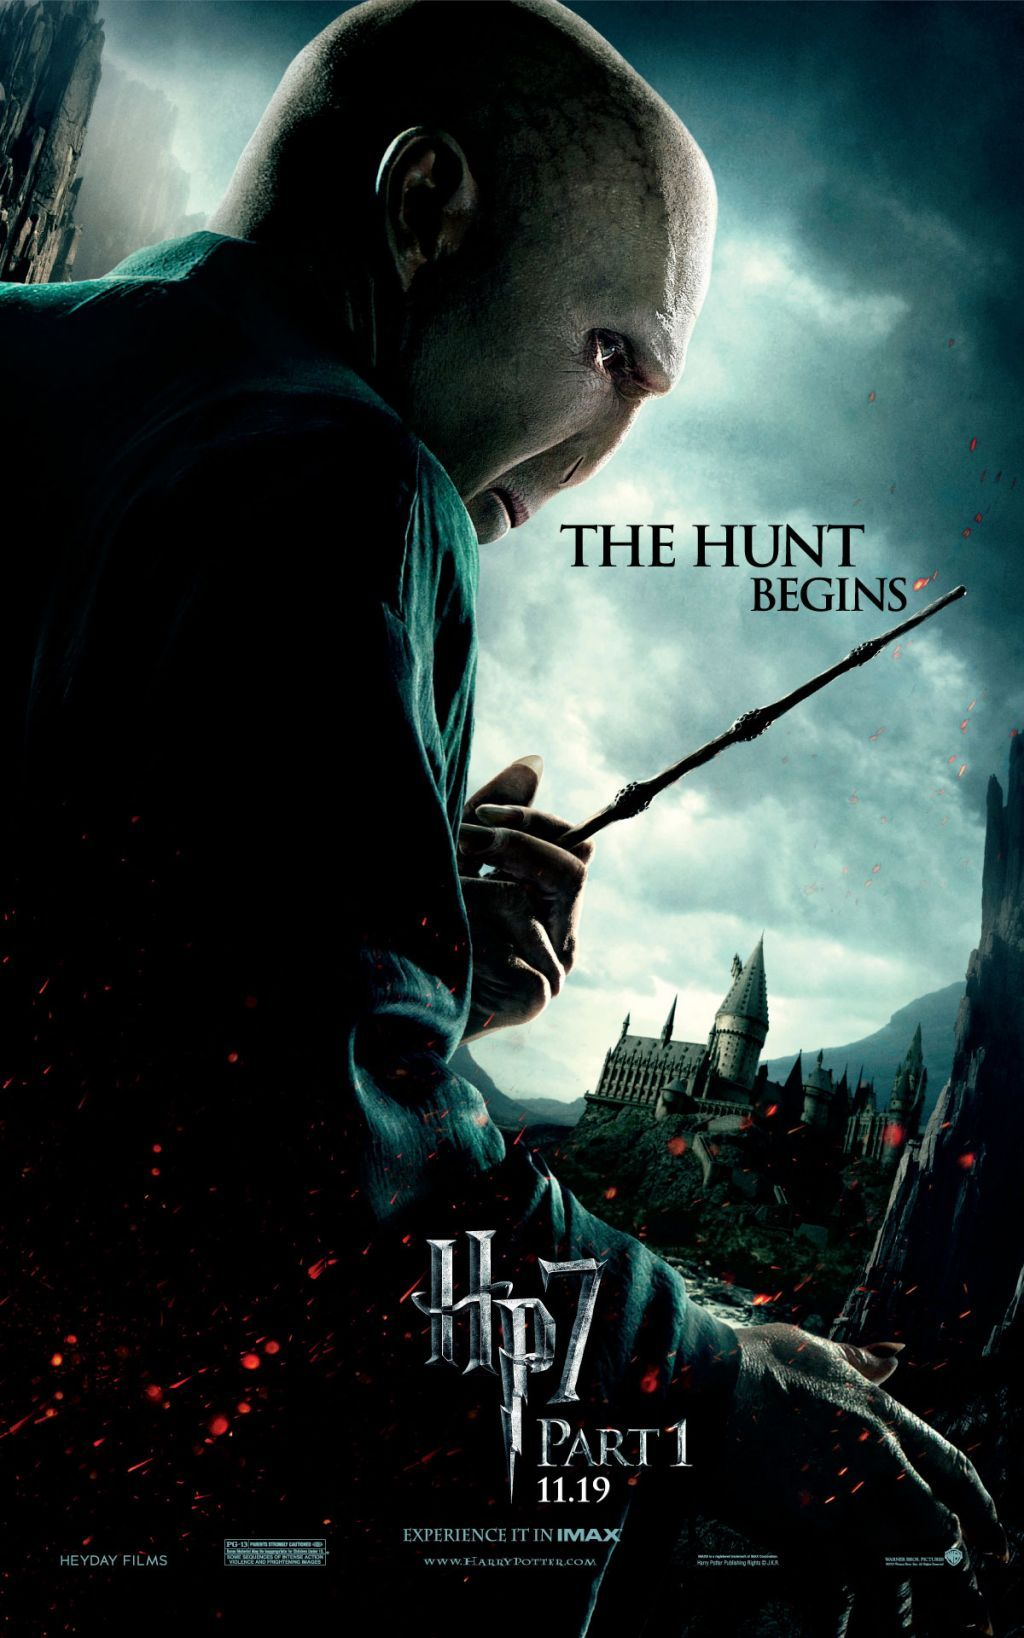 Harry Potter And The Deathly Hallows Part I Movie Posters Harry Potter Movie Posters Deathly Hallows Movie Harry Potter Movies